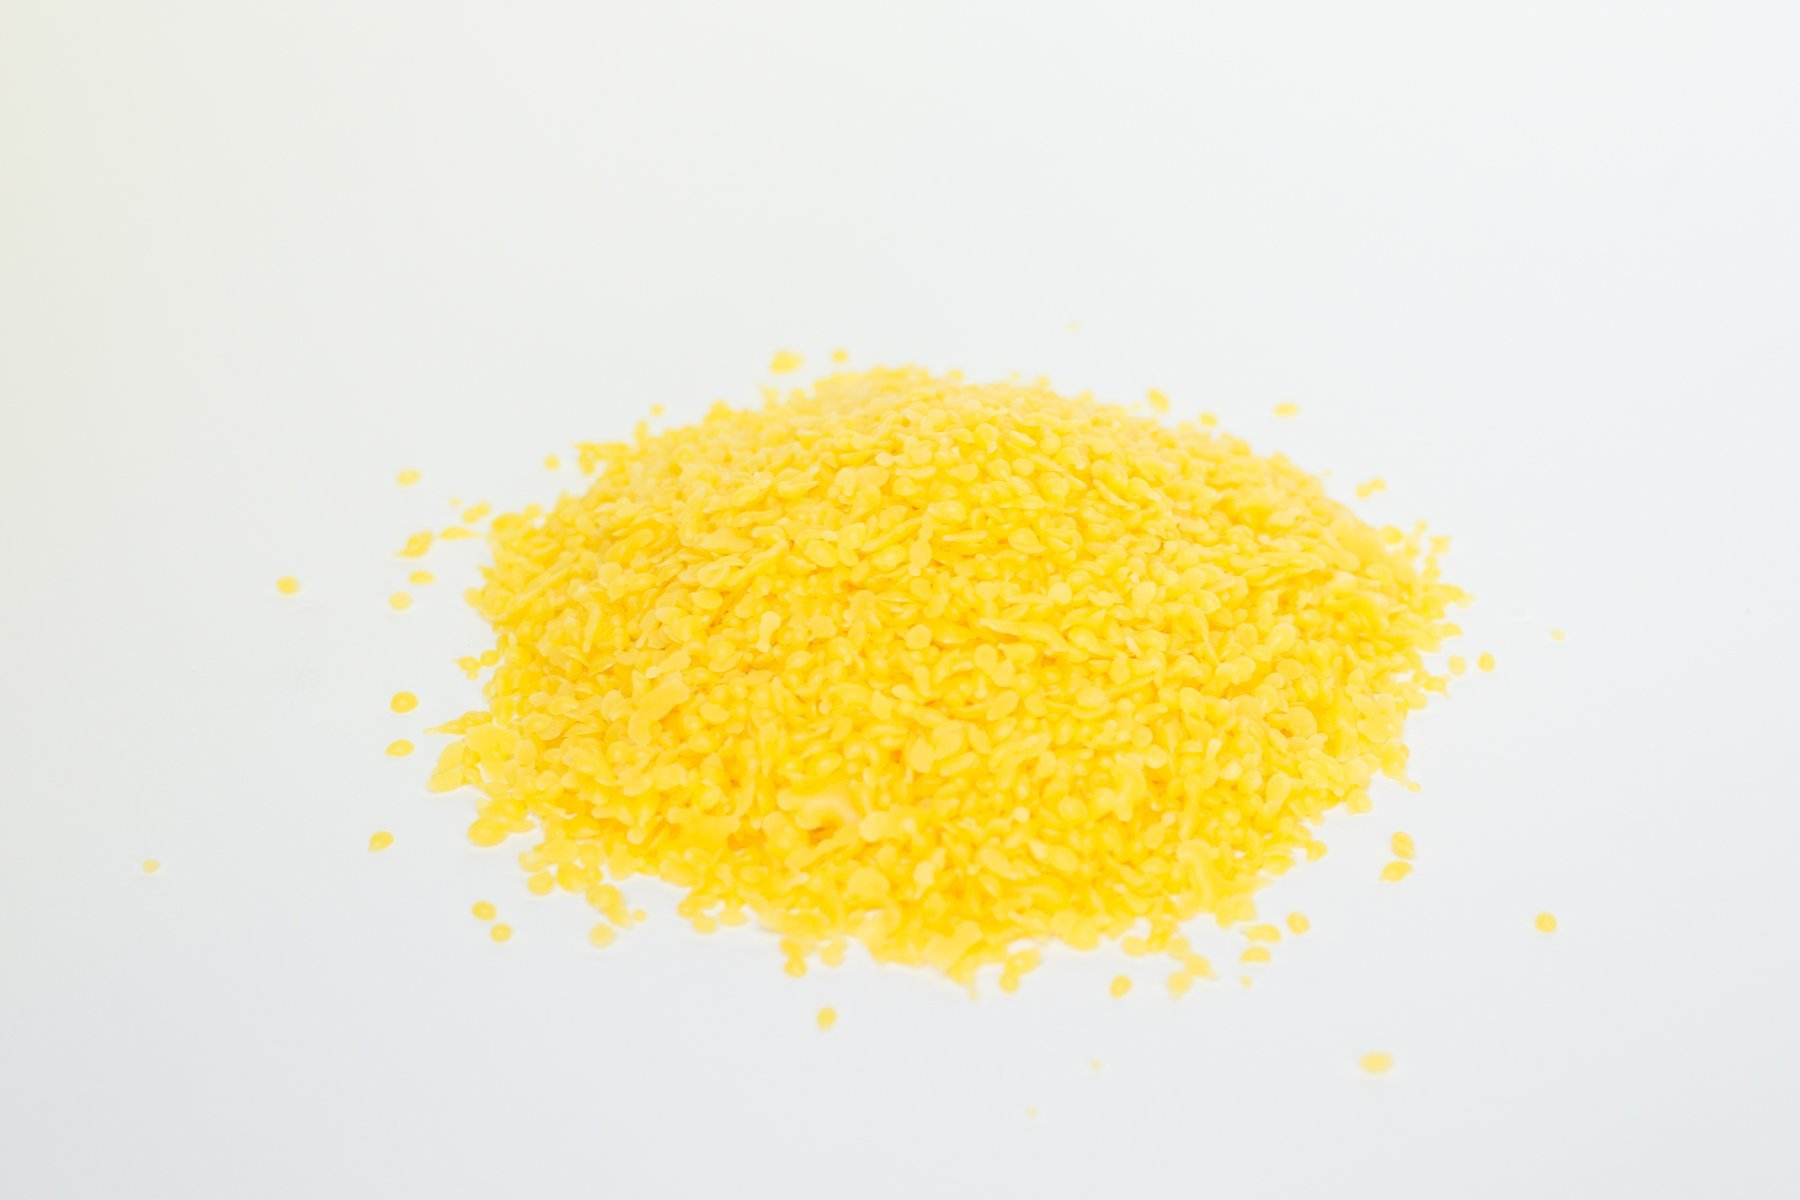 100% Pure Yellow easy to use Beeswax Wax Pellets by Candlewic. Premium Quality, cosmetic grade beeswax that is perfect for your lip balm balms, body lotions, creams and candle making. (10lb. Bag)